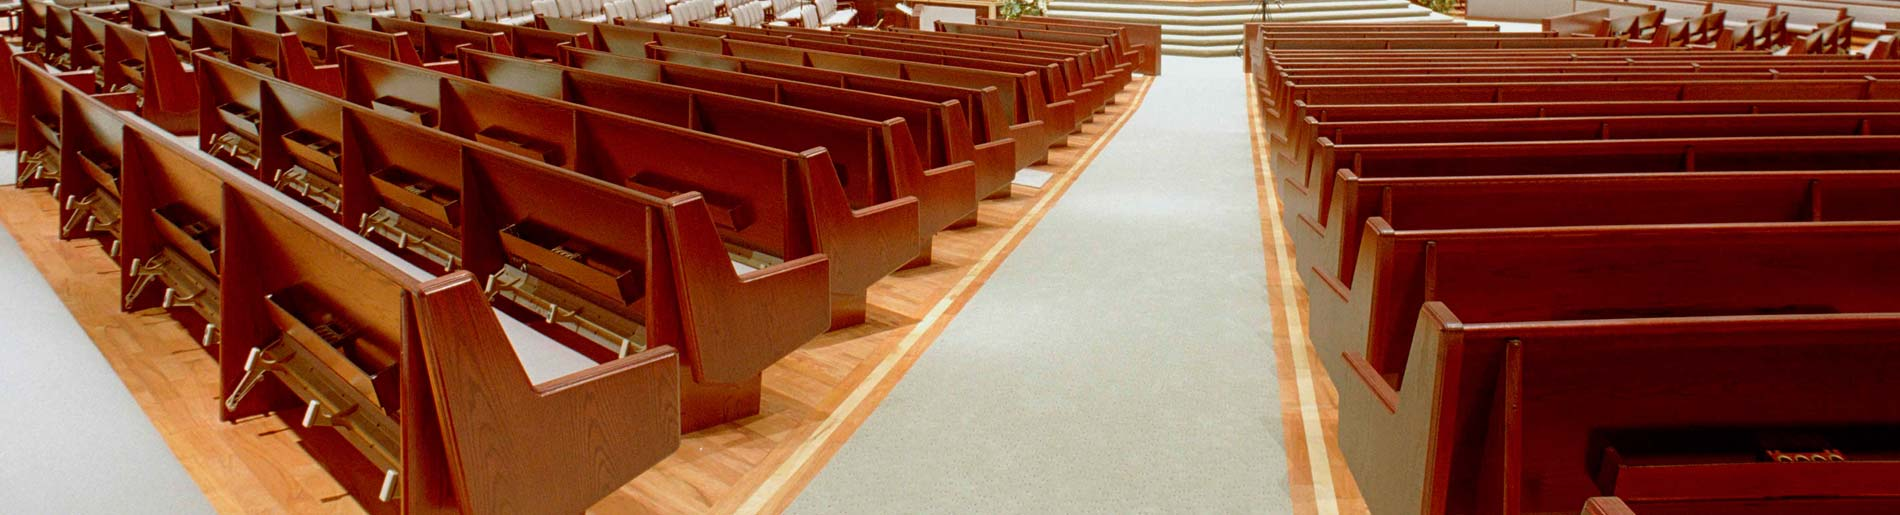 Church Pew Benches Pew Chairs Imperial Woodworks